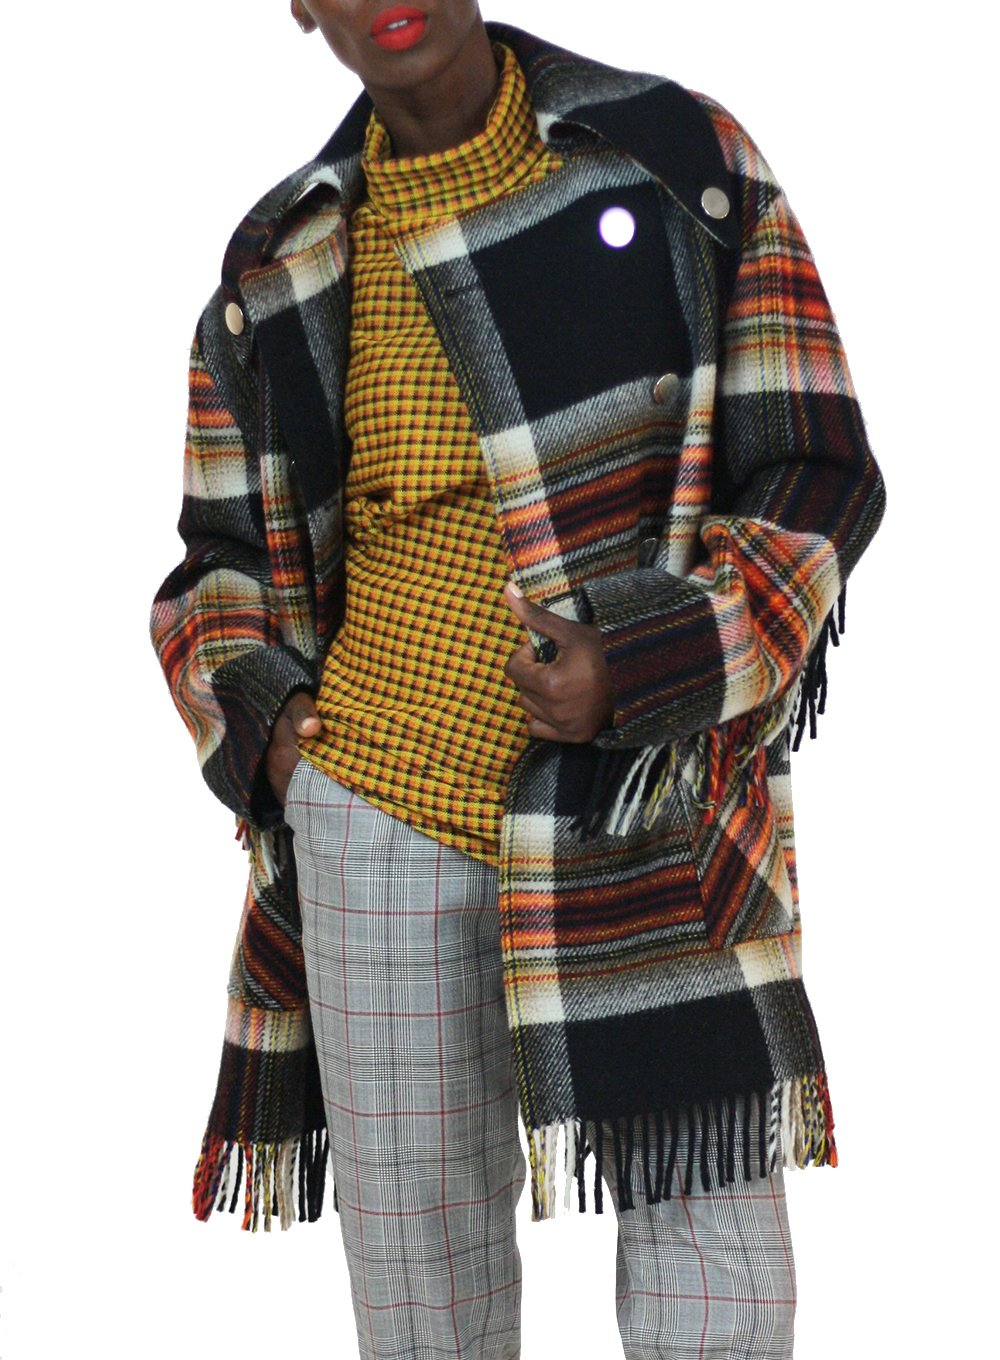 CALVIN KLEIN 205W39NYC | Fringed Caban Coat In Pendleton Multicolor Plaid Wool